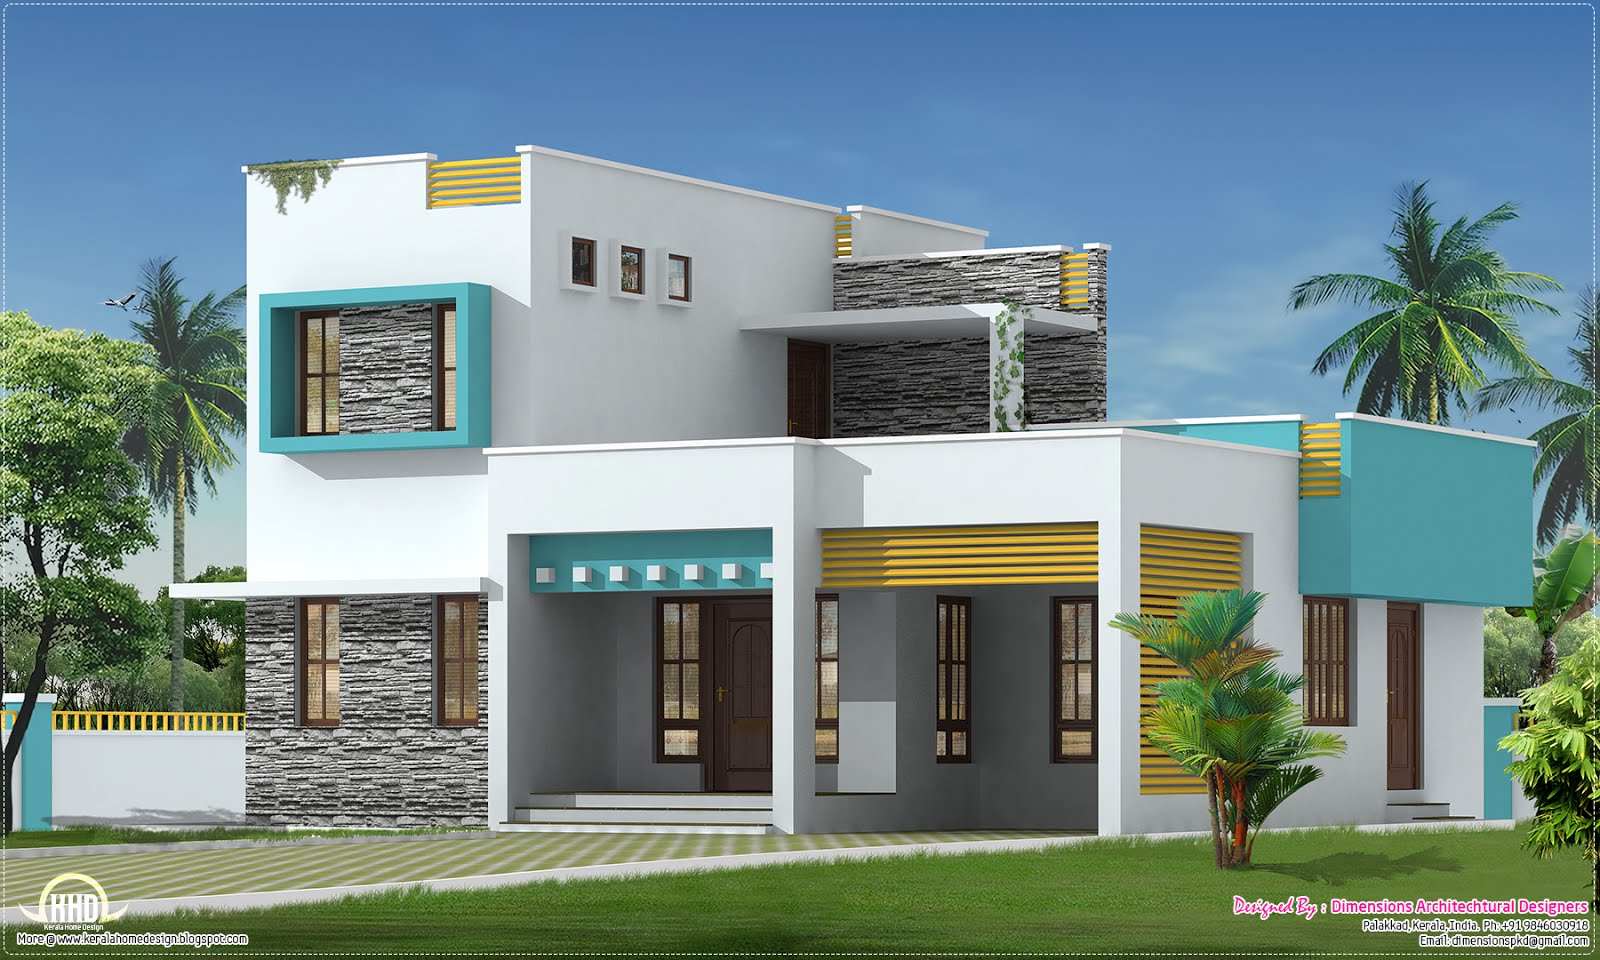 Gallery besides House Plans Double Story Australia in addition Floor Plan Friday Big Double Storey 5 Bedrooms additionally Custom Home Plans In Florida moreover Modern Home Plans With A View. on single story luxury house plans